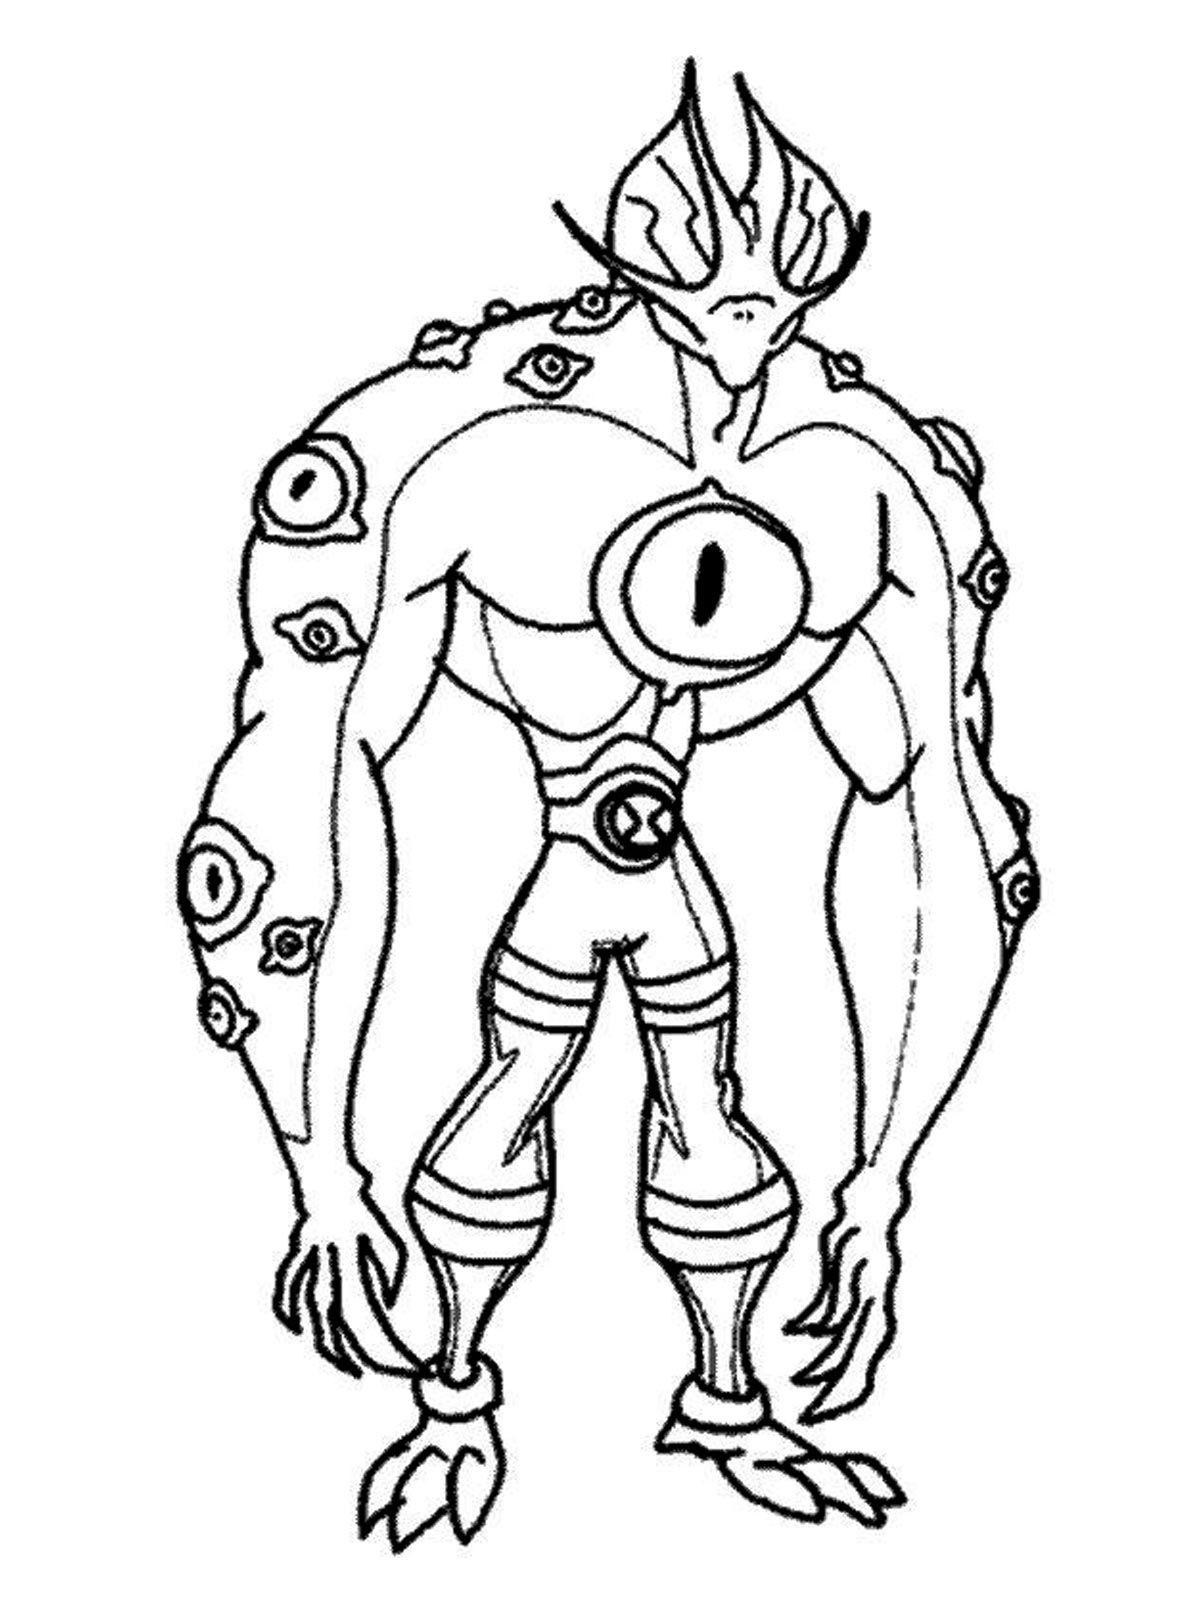 Ben 10 Swamp Fire Coloring Pages  httpwwwkidscpcomben10